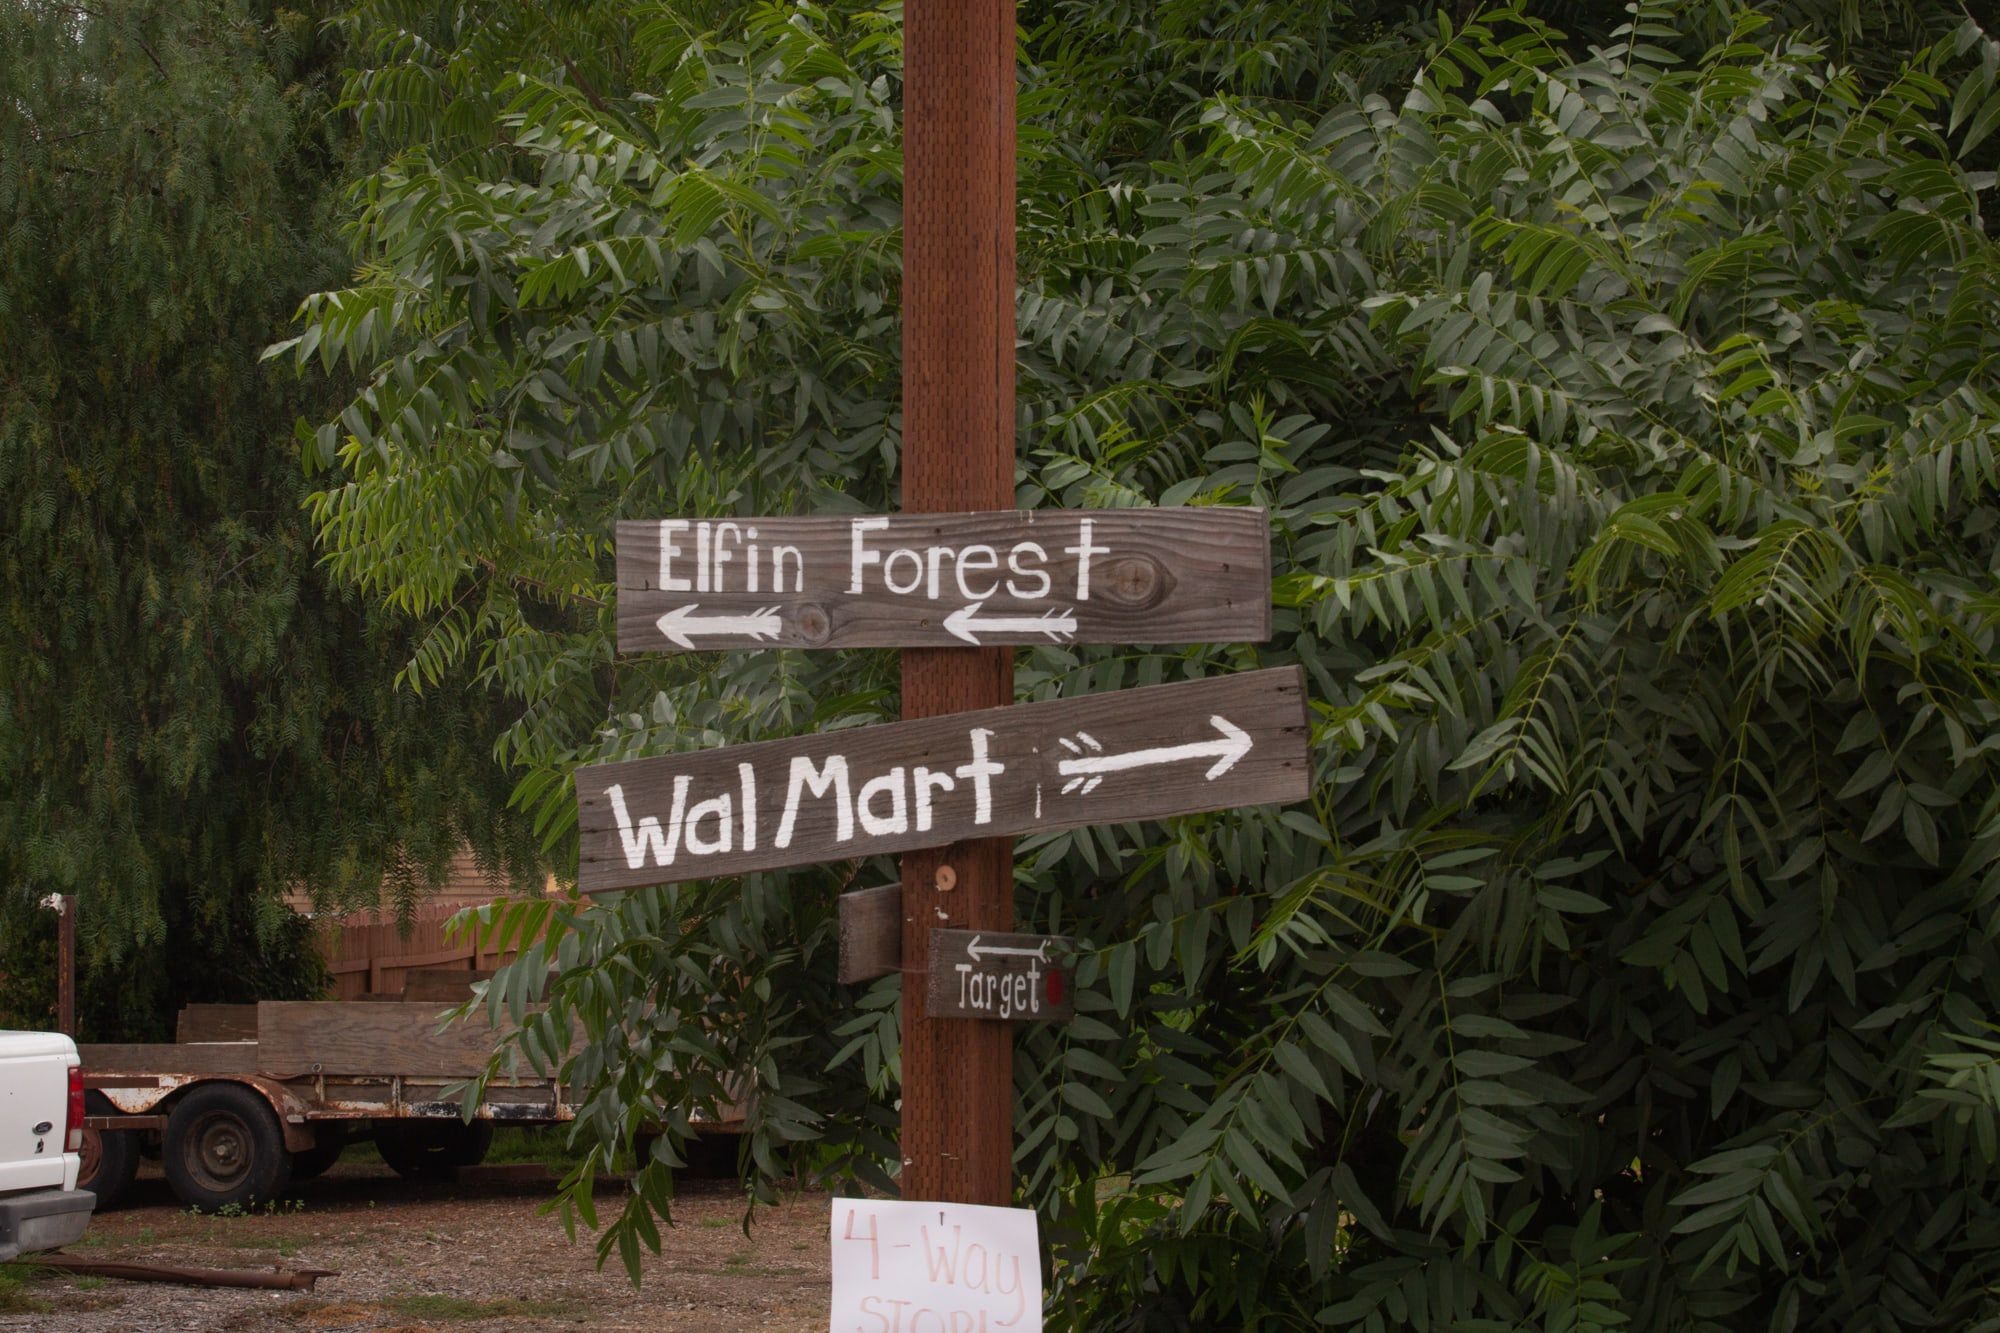 Homemade signs are a tongue-in-cheek nod to years of tension among Elfin Forest, Harmony Grove and other rural communities in San Diego County. (Kailey Broussard/News21)